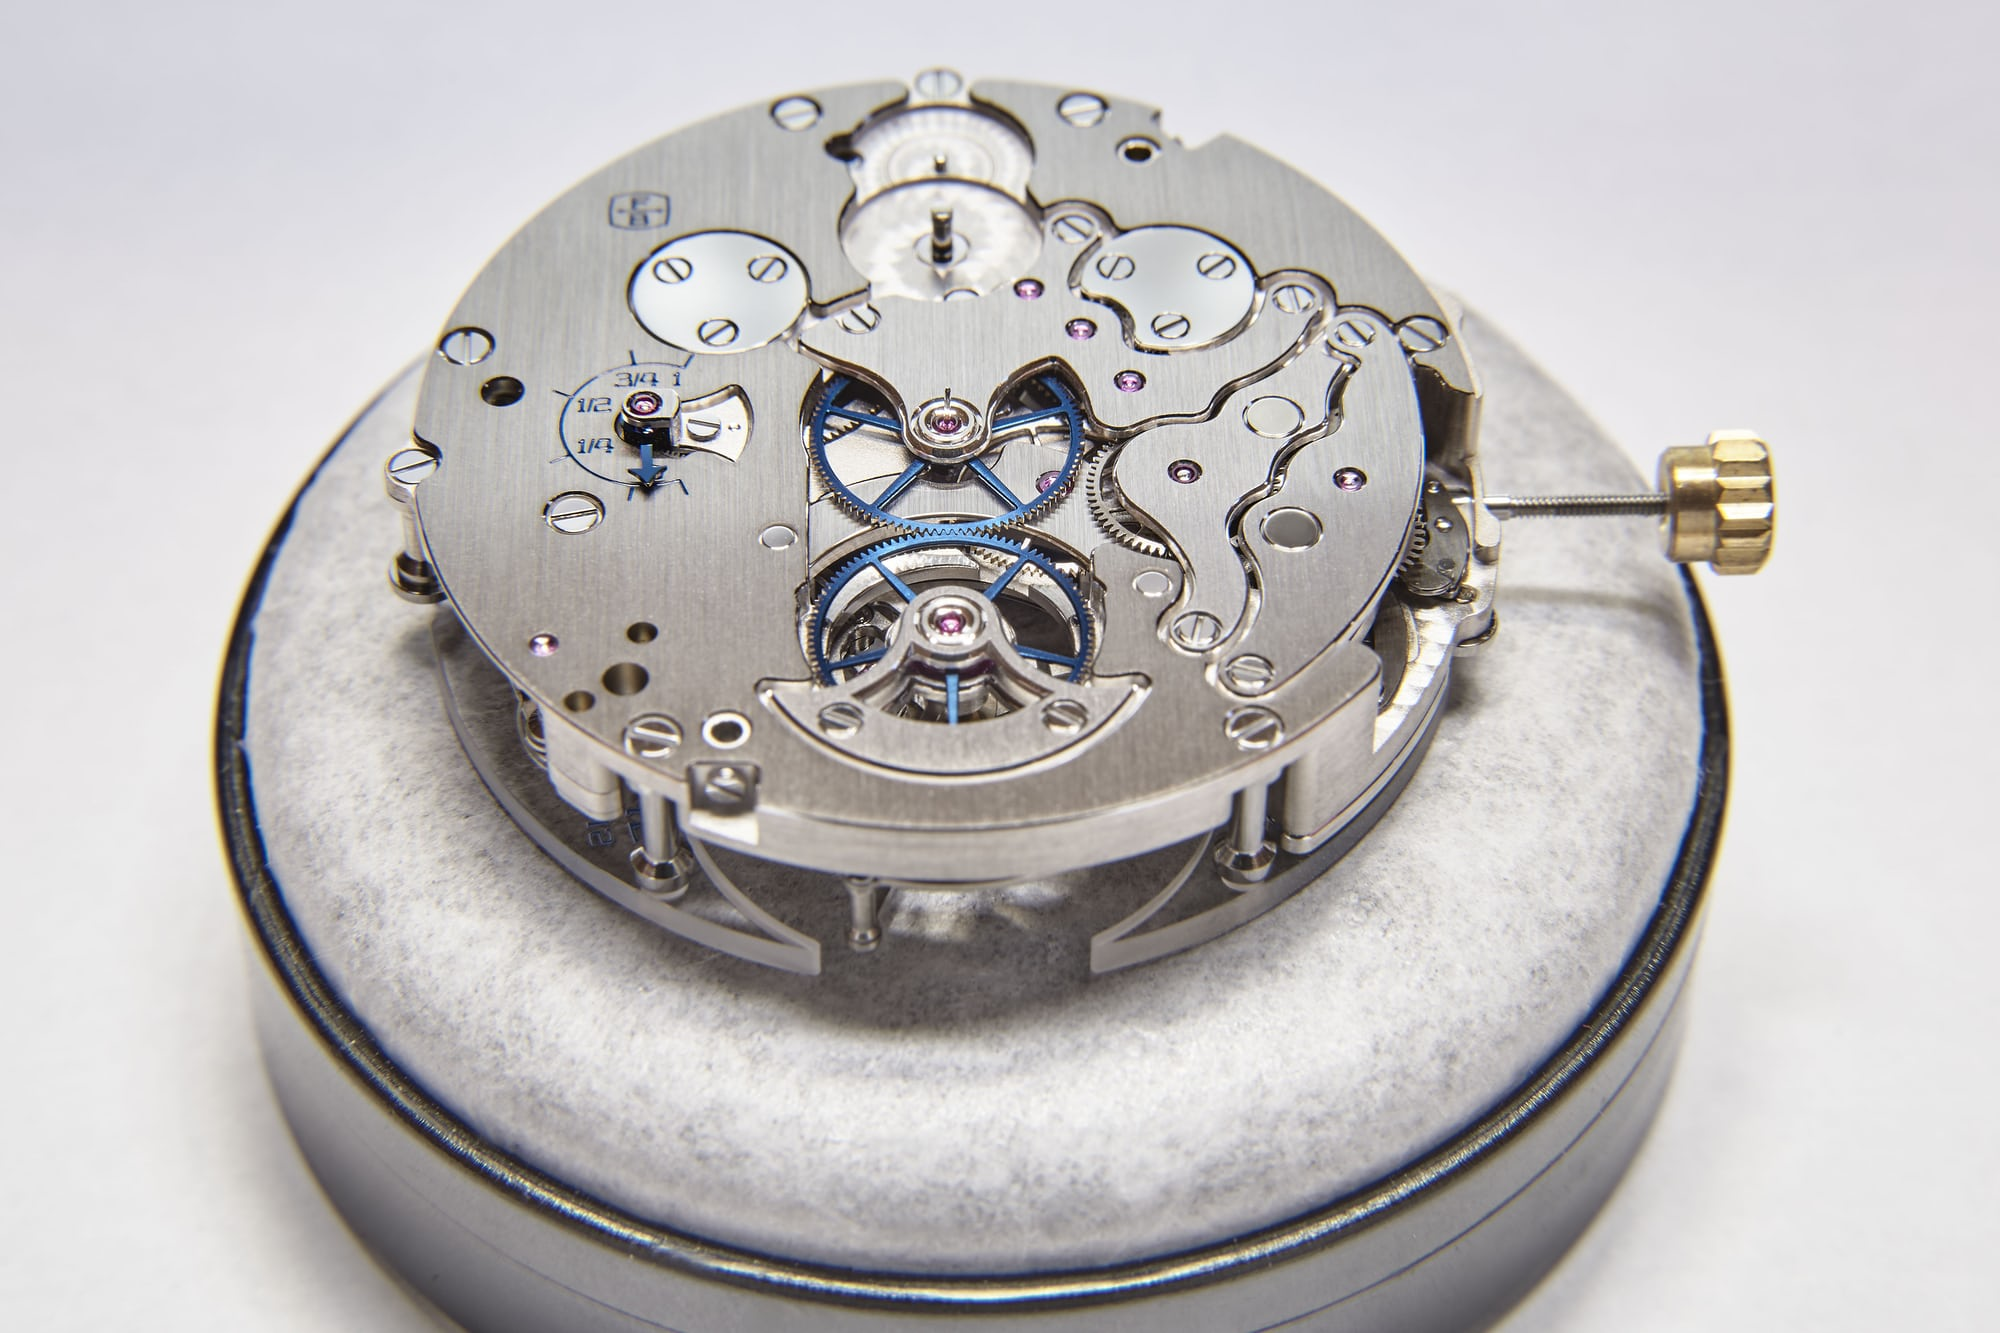 Introducing: The Ferdinand Berthoud FB1.4 In Titanium Introducing: The Ferdinand Berthoud FB1.4 In Titanium 006  The FB T